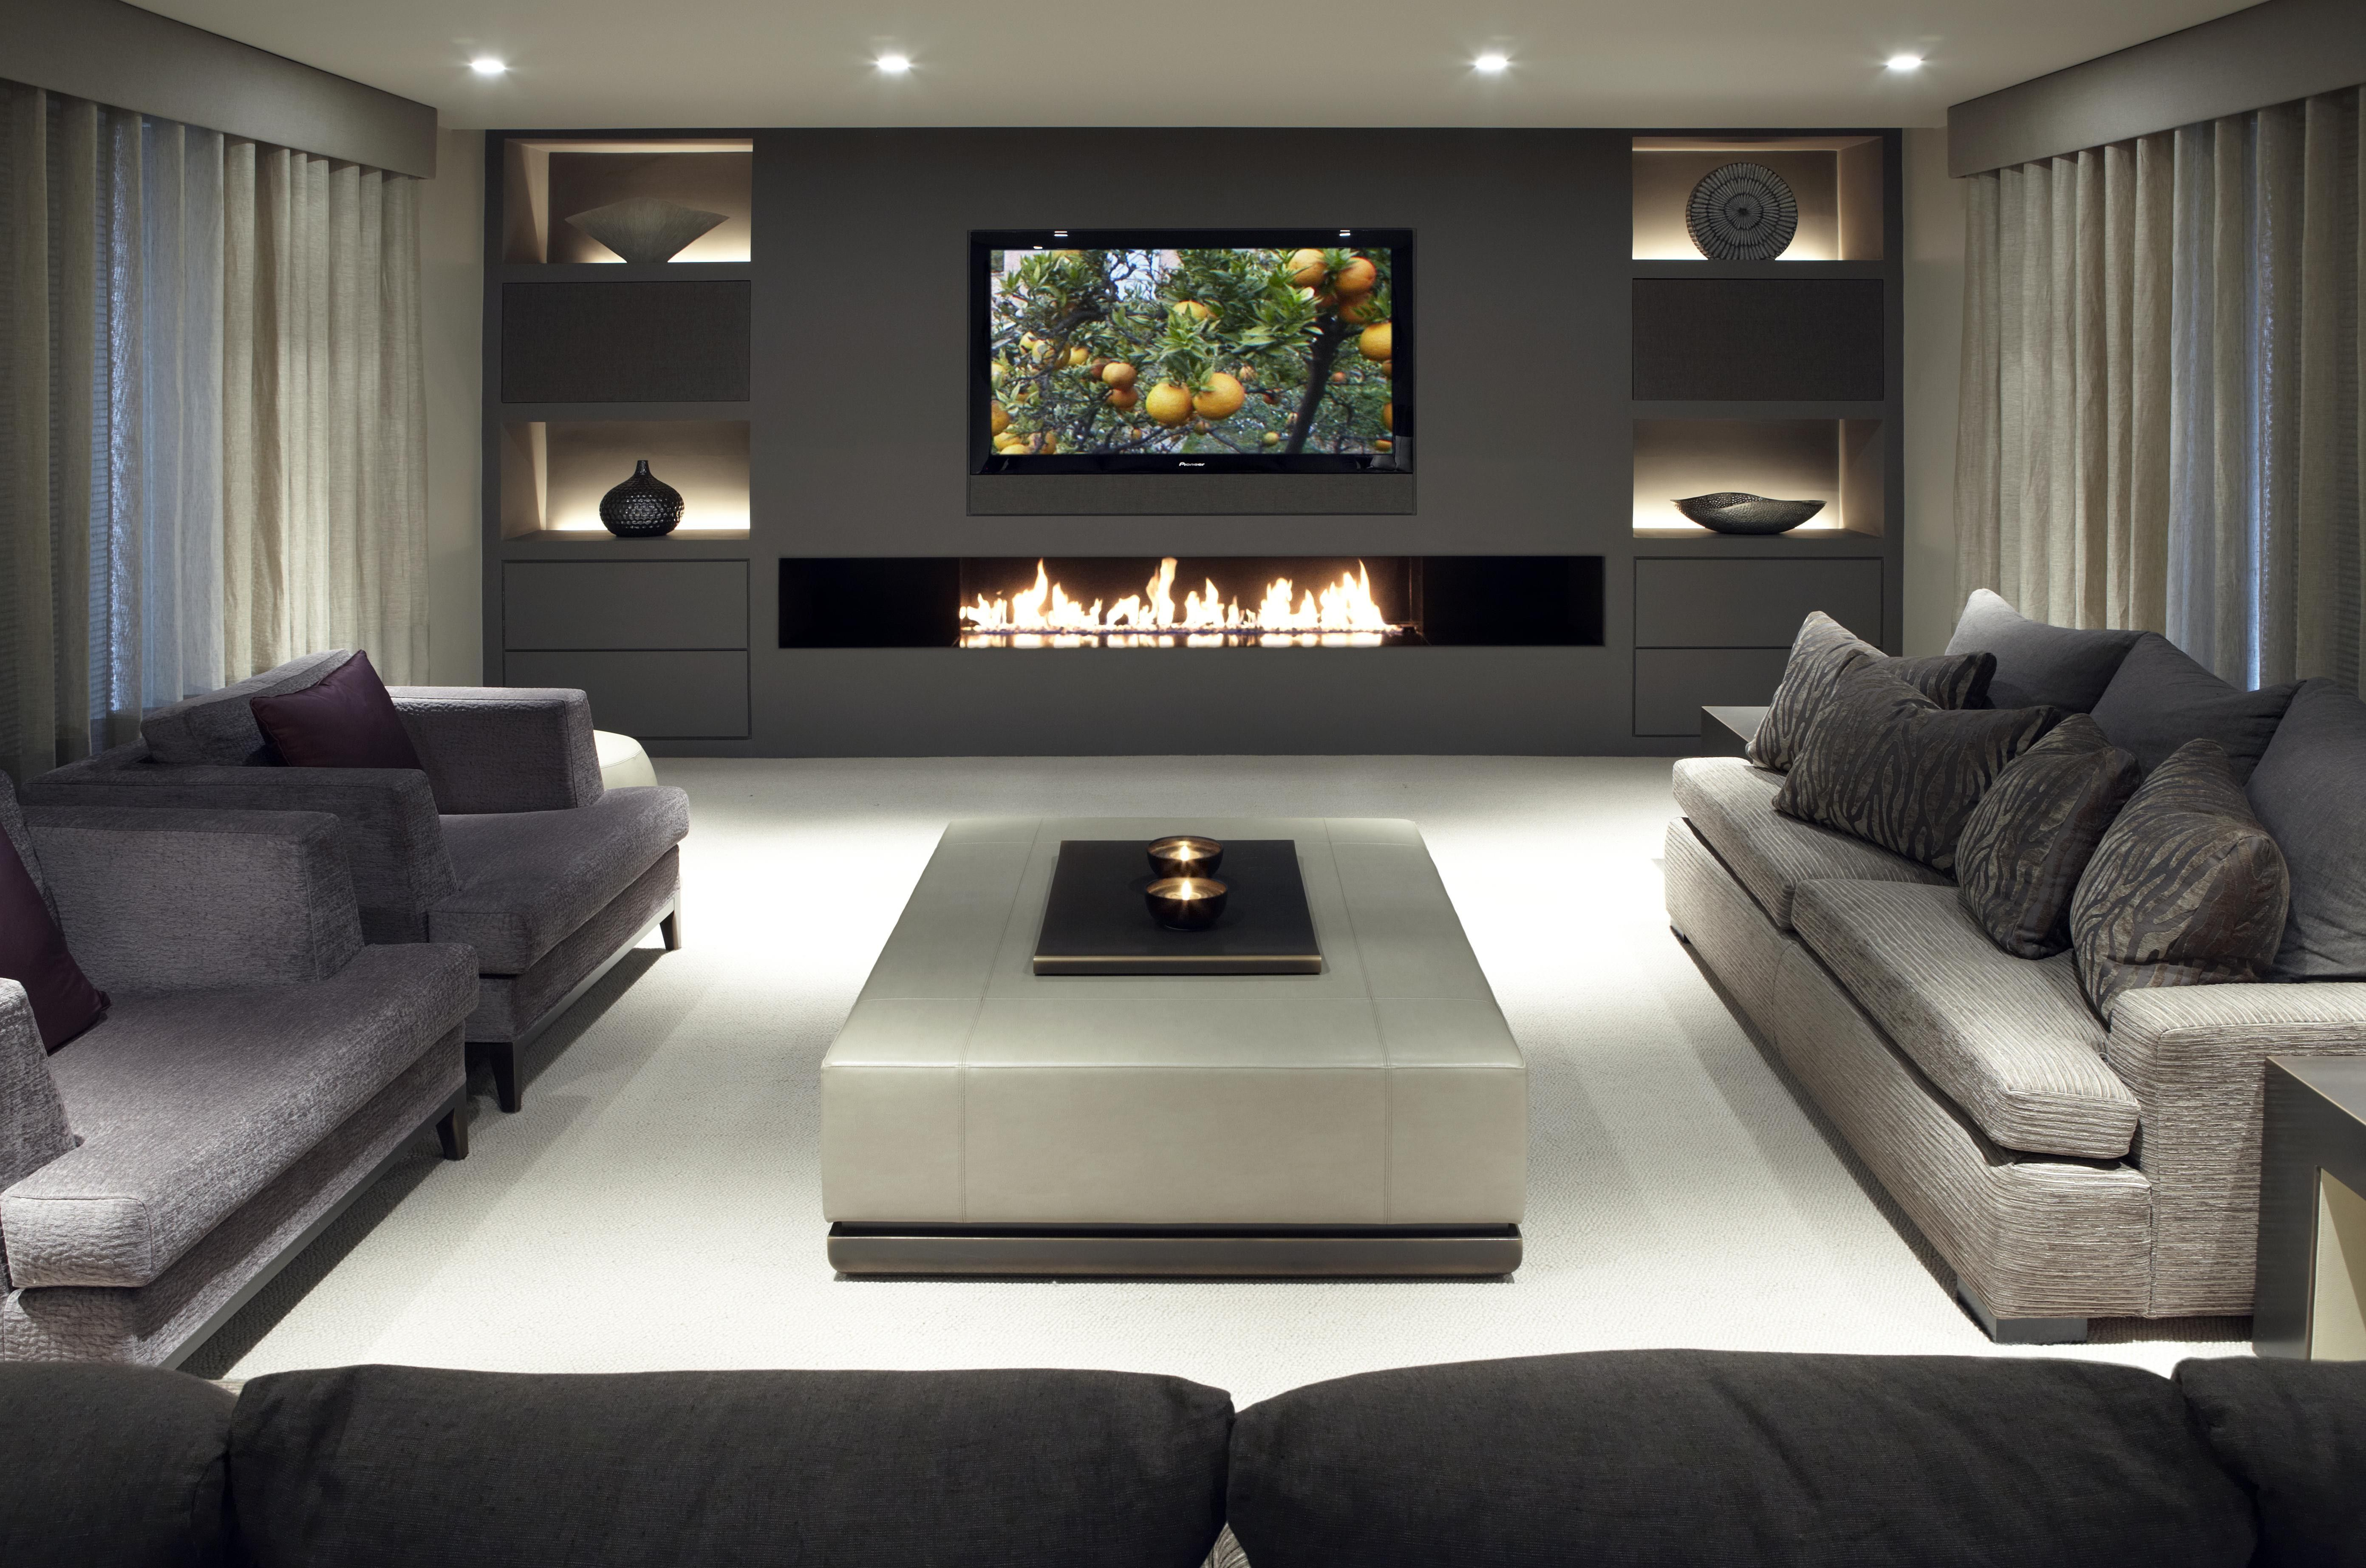 Top Living Room Design Ideas The Best Tips For Your Next Update